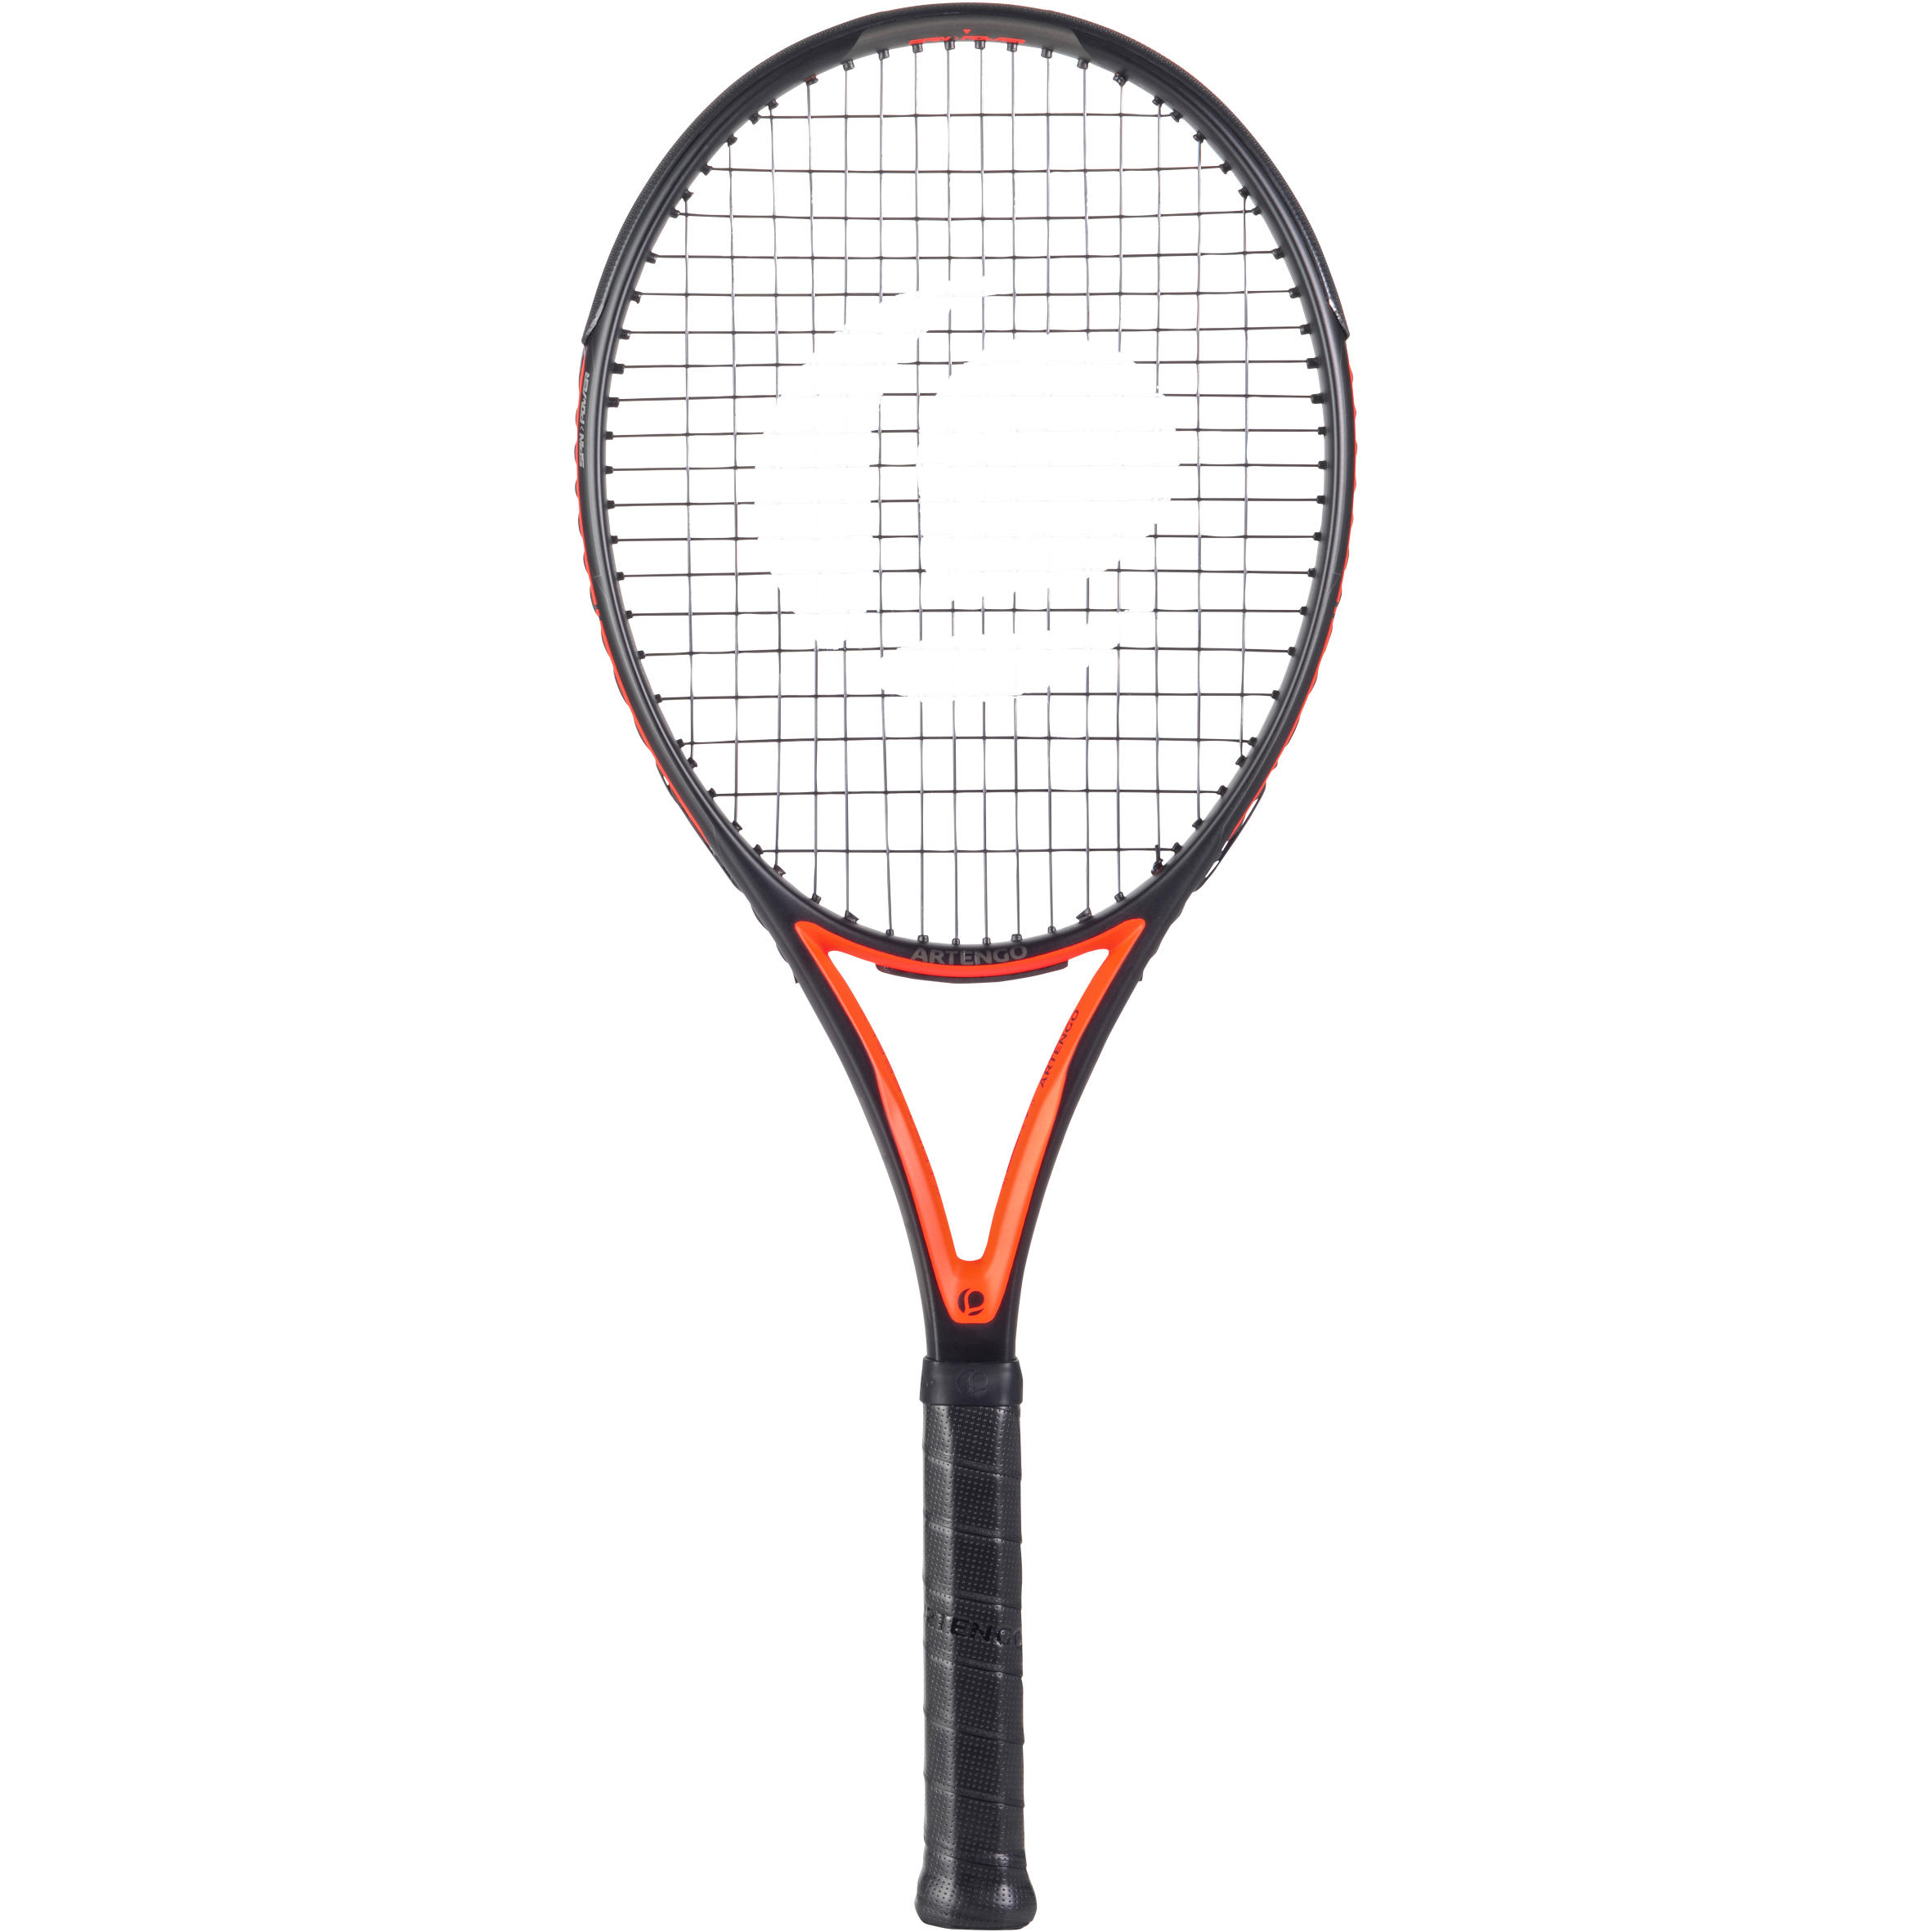 TR 900 Pro Adult Tennis Racket - Black/Orange